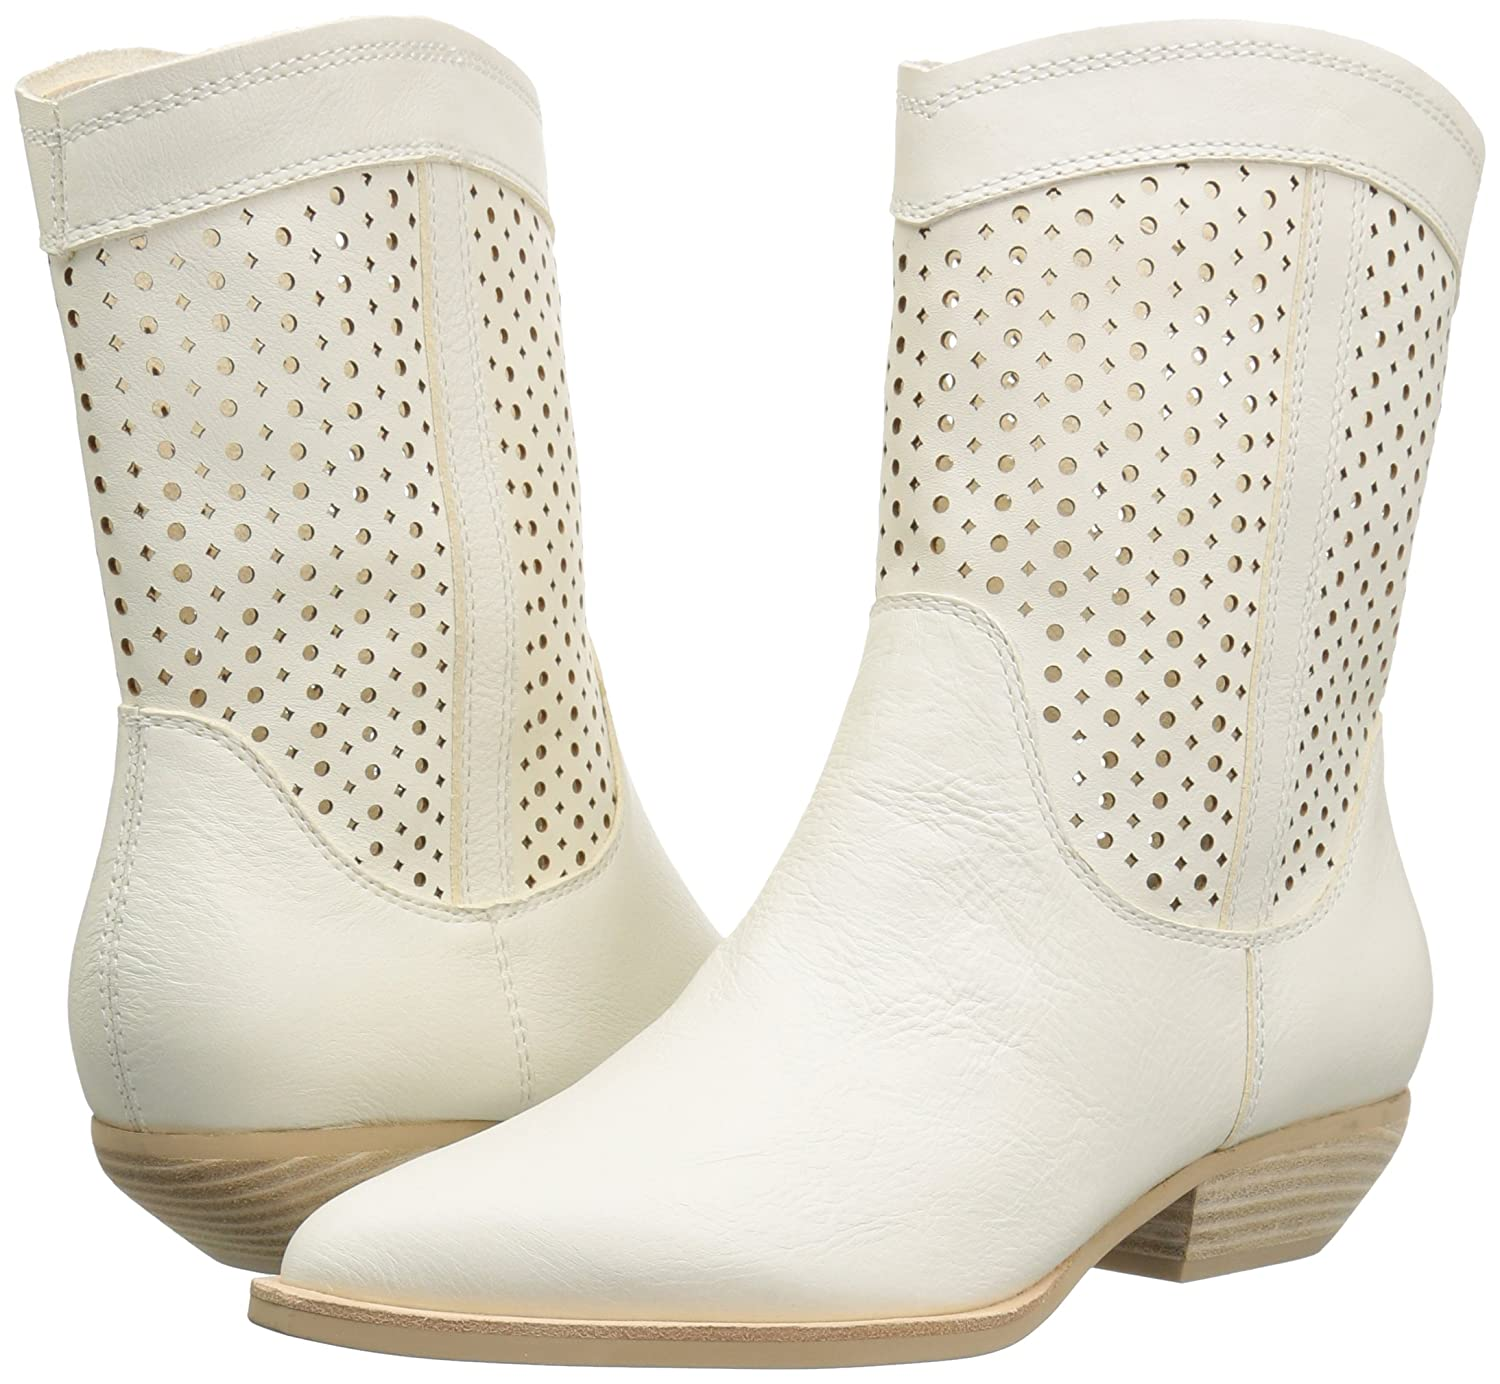 Dolce Vita Women's Union Fashion Boot B07B9M8JHQ 7.5 B(M) US|Off White Leather